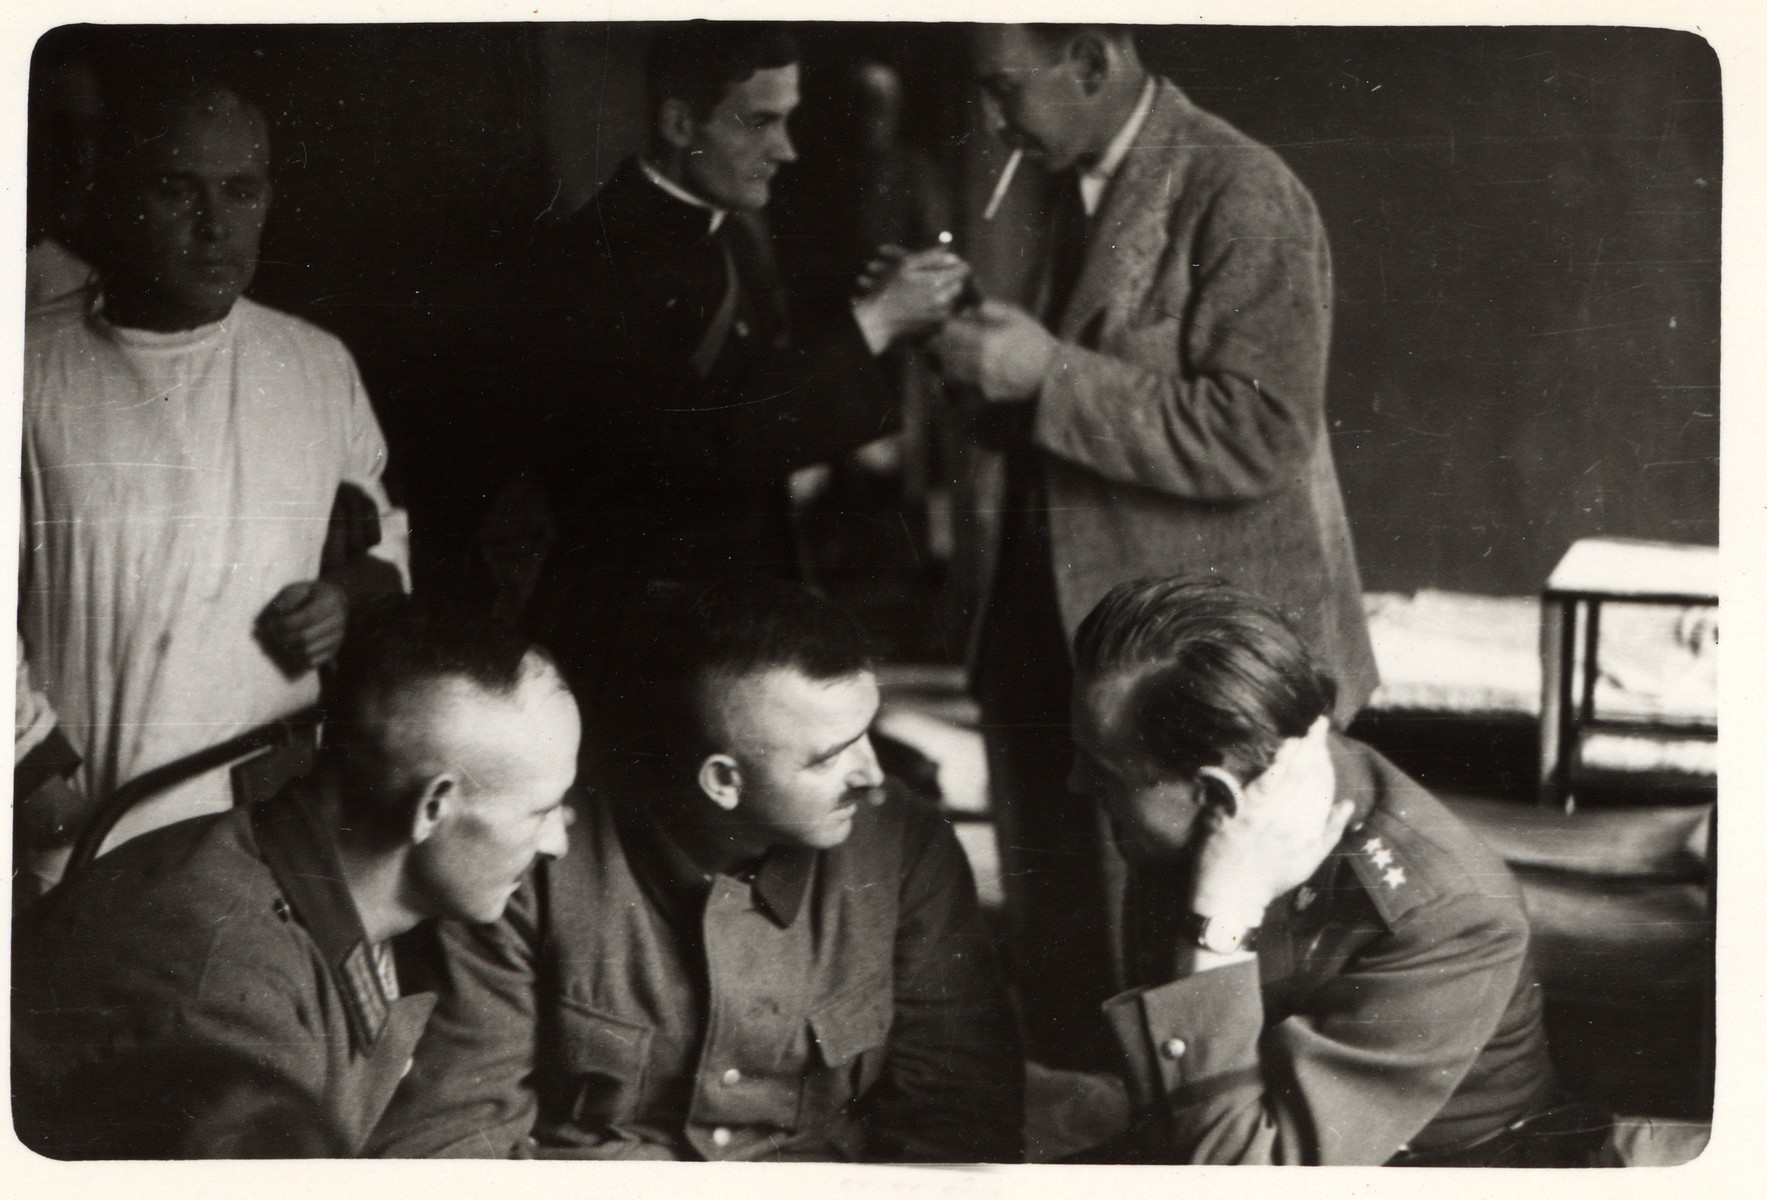 German POWs discuss amongst themselves while a Polish priest lights Julien Bryan's cigarette in the background.